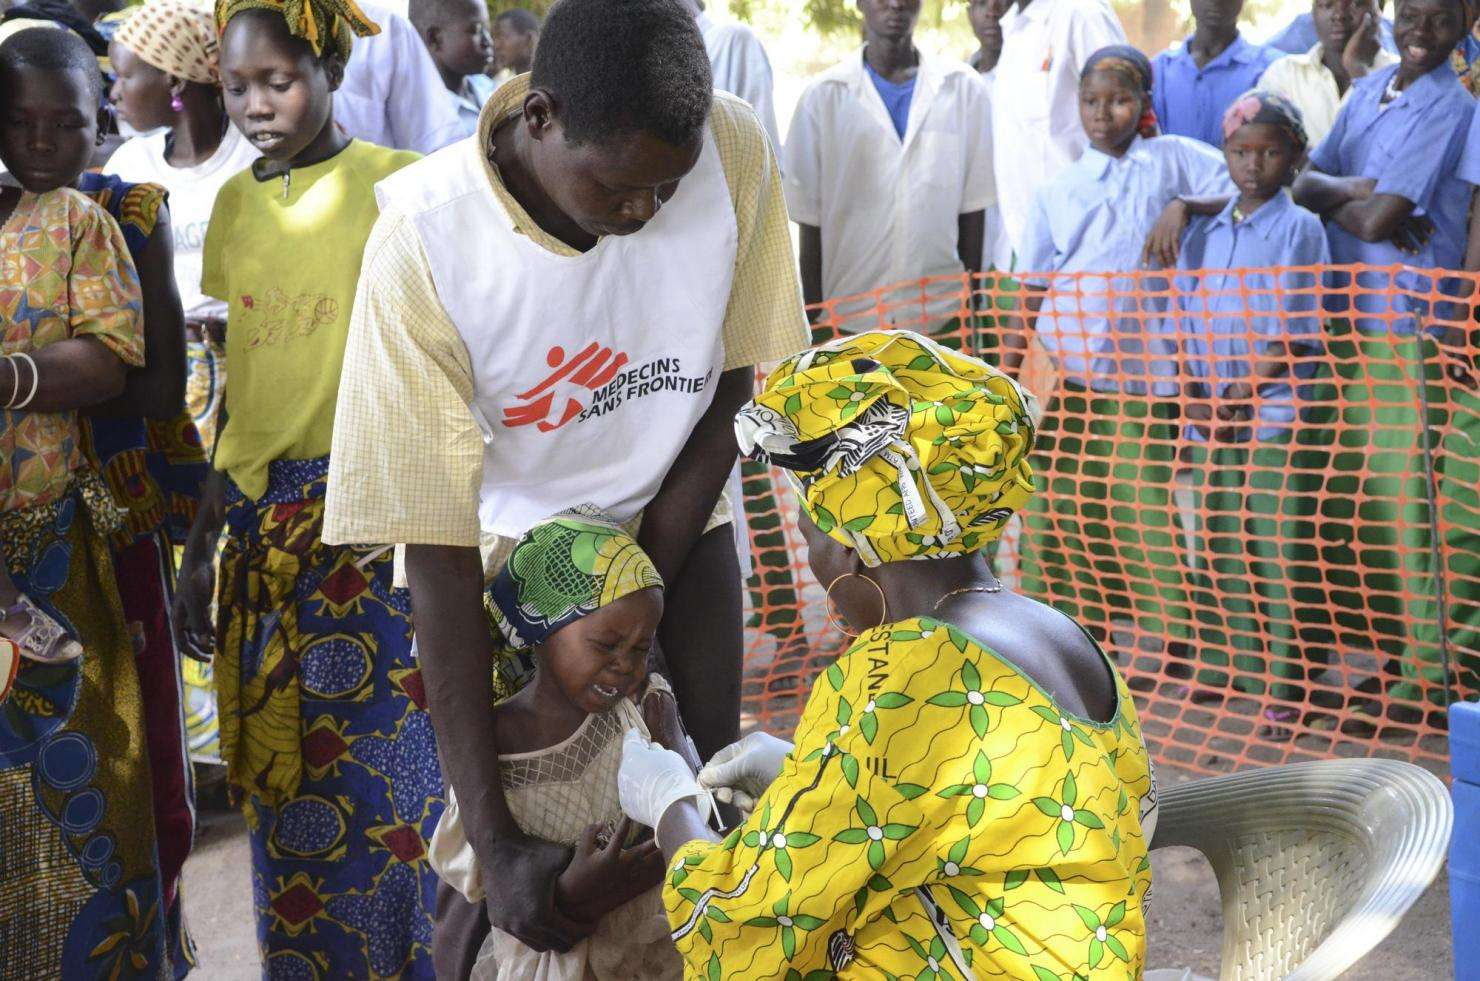 MSF staff provides comfort while a child receives meningitis vaccination